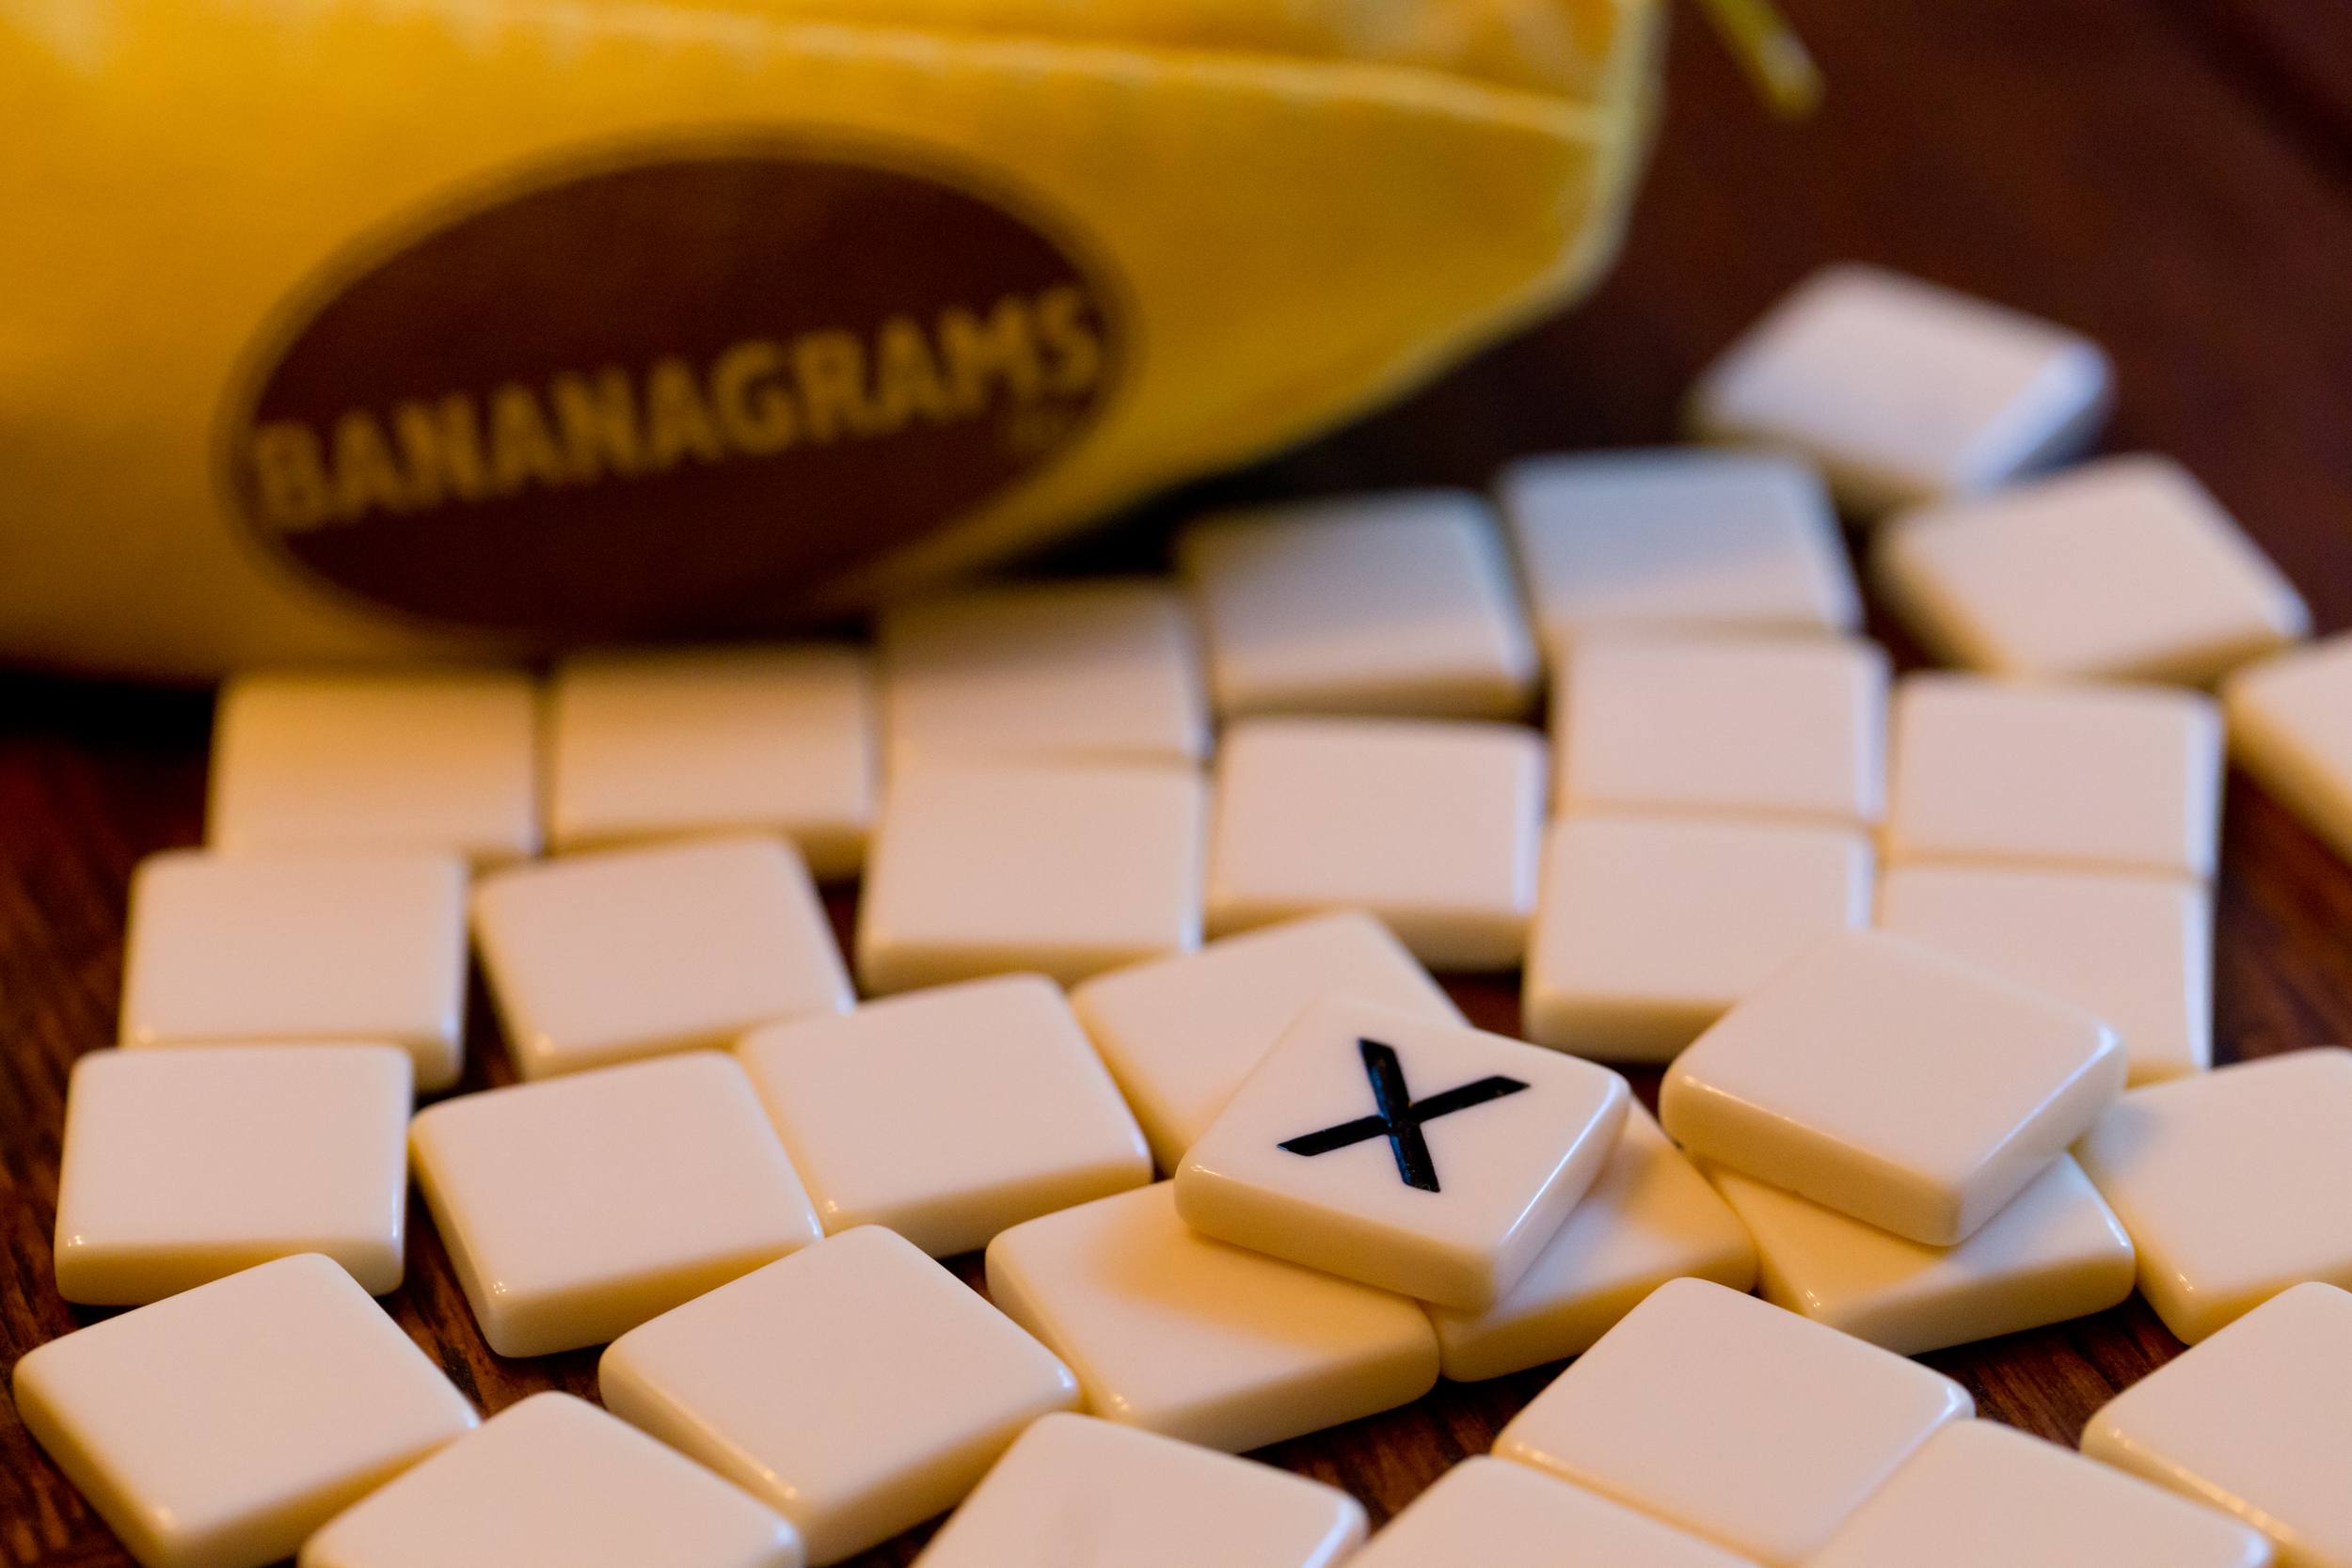 Banangrams game tiles, letter X